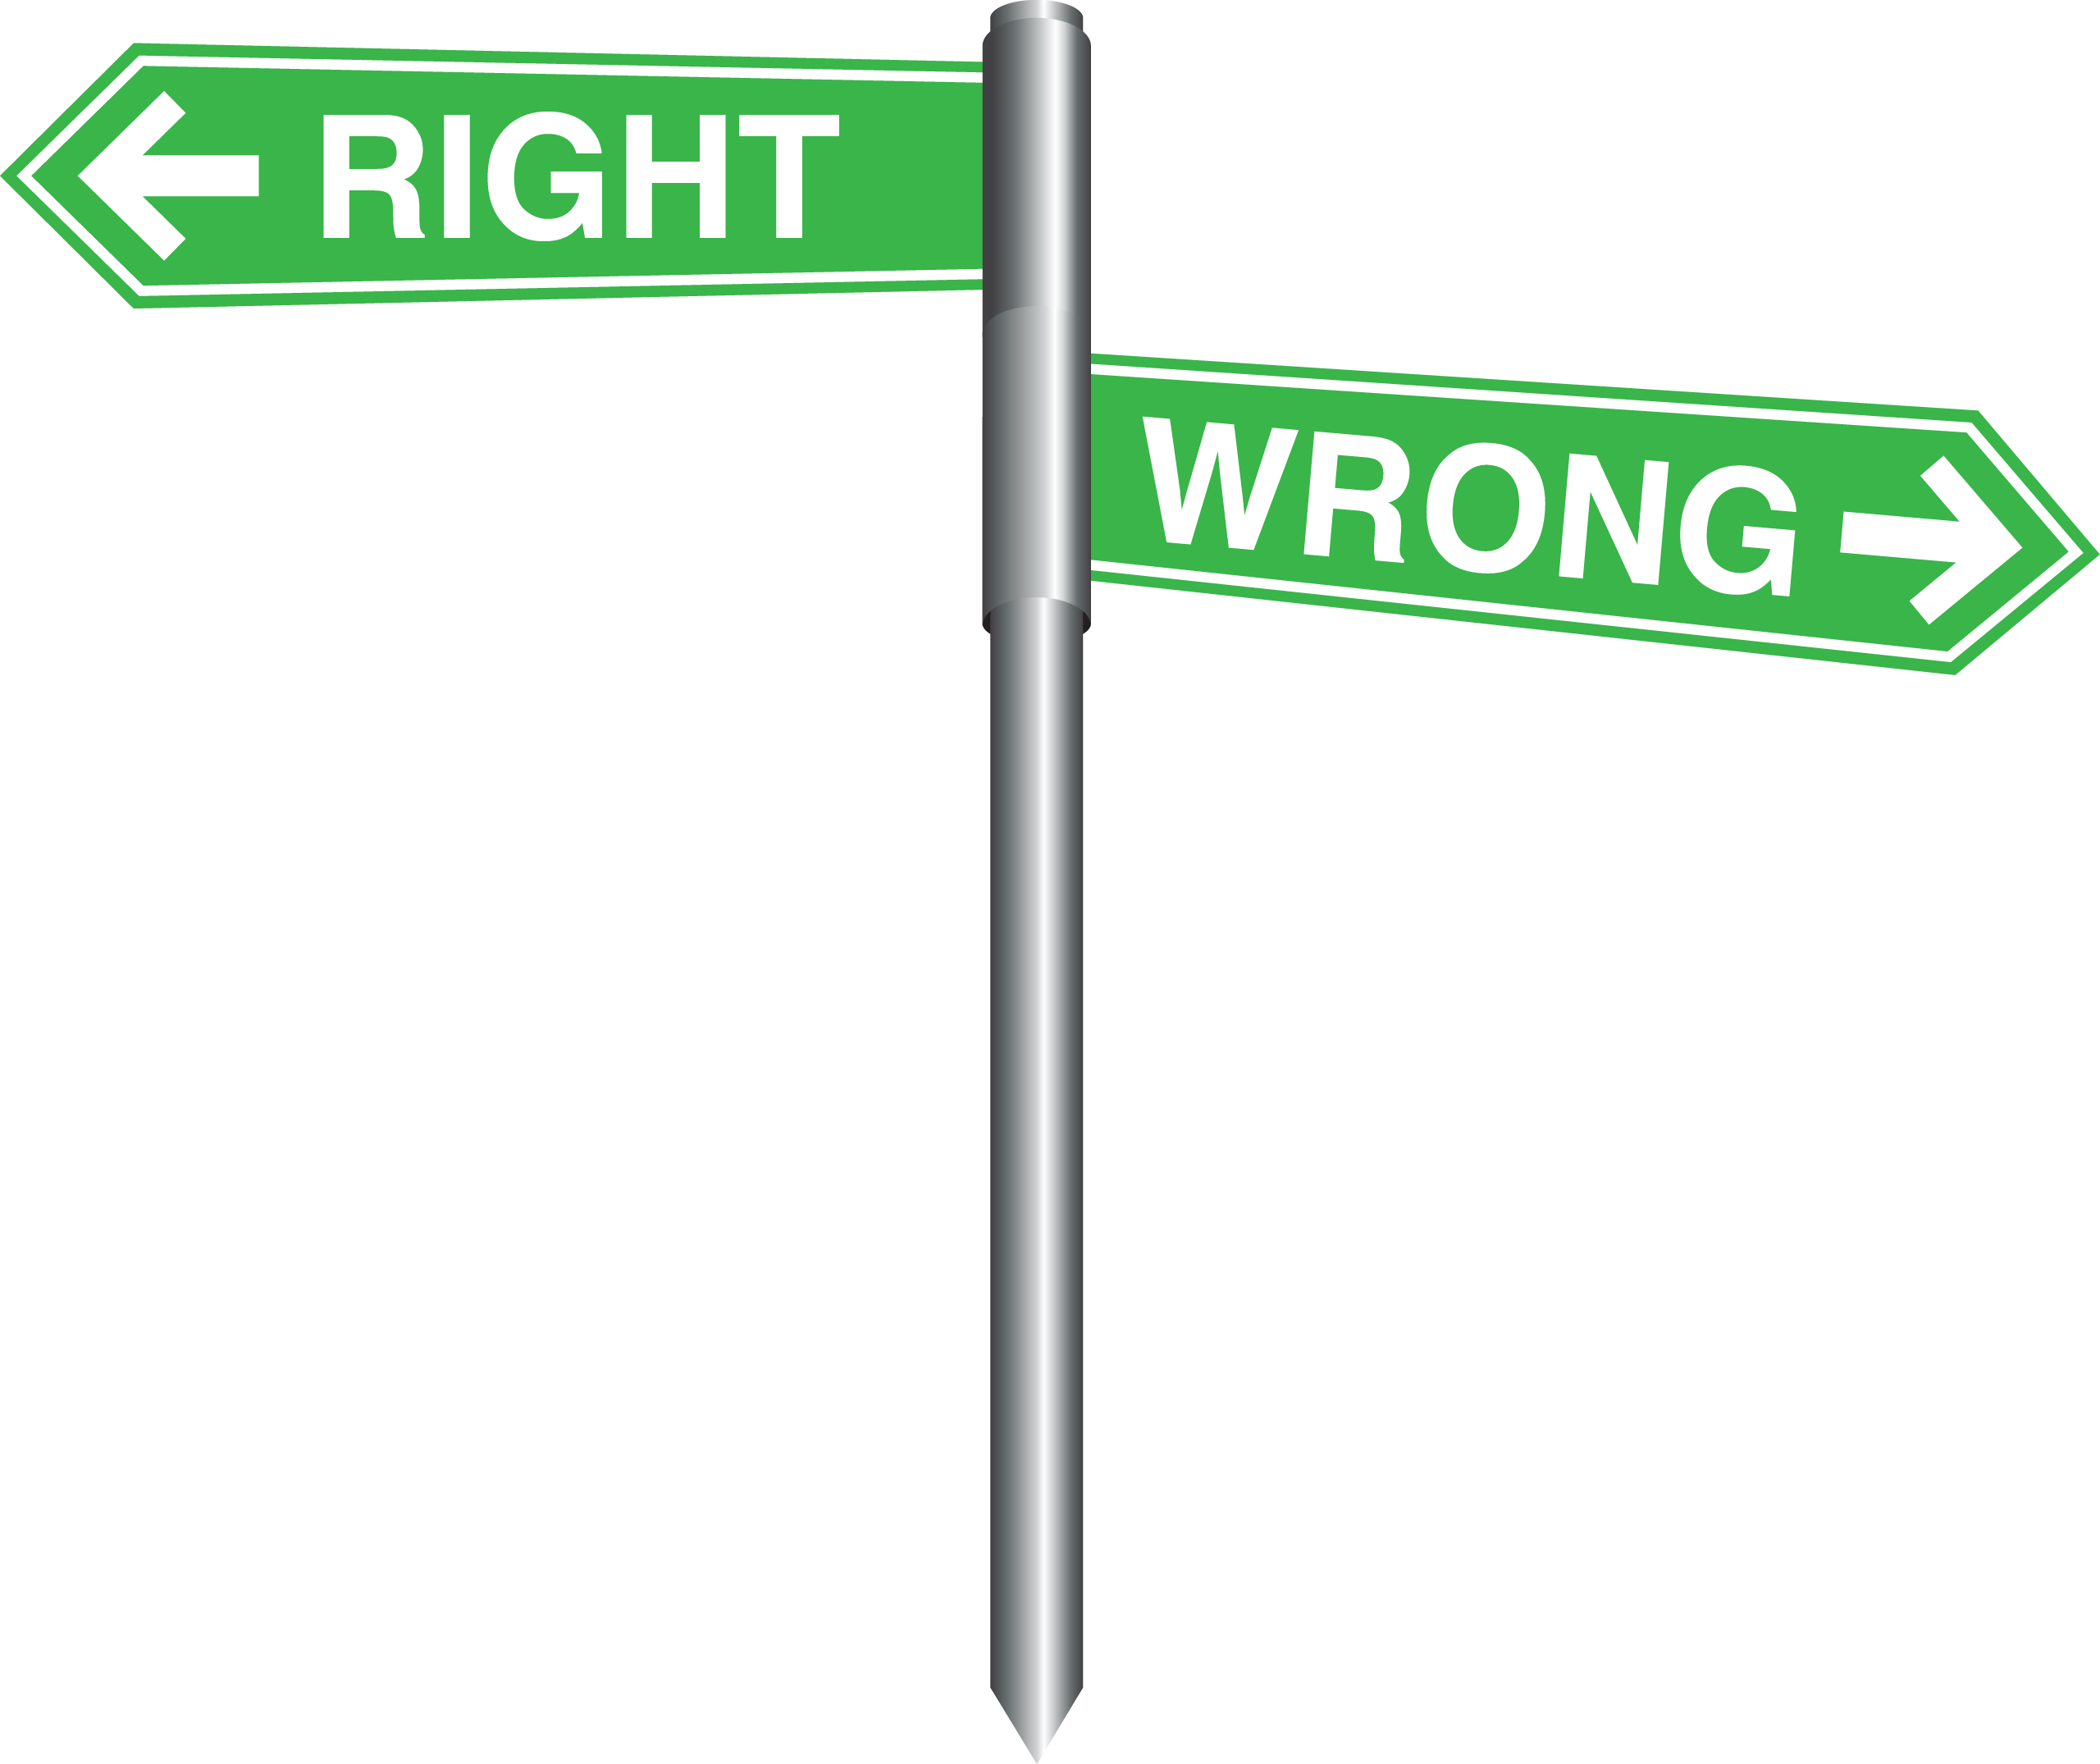 Right and Wrong Road Signs - Wisc-Online OER